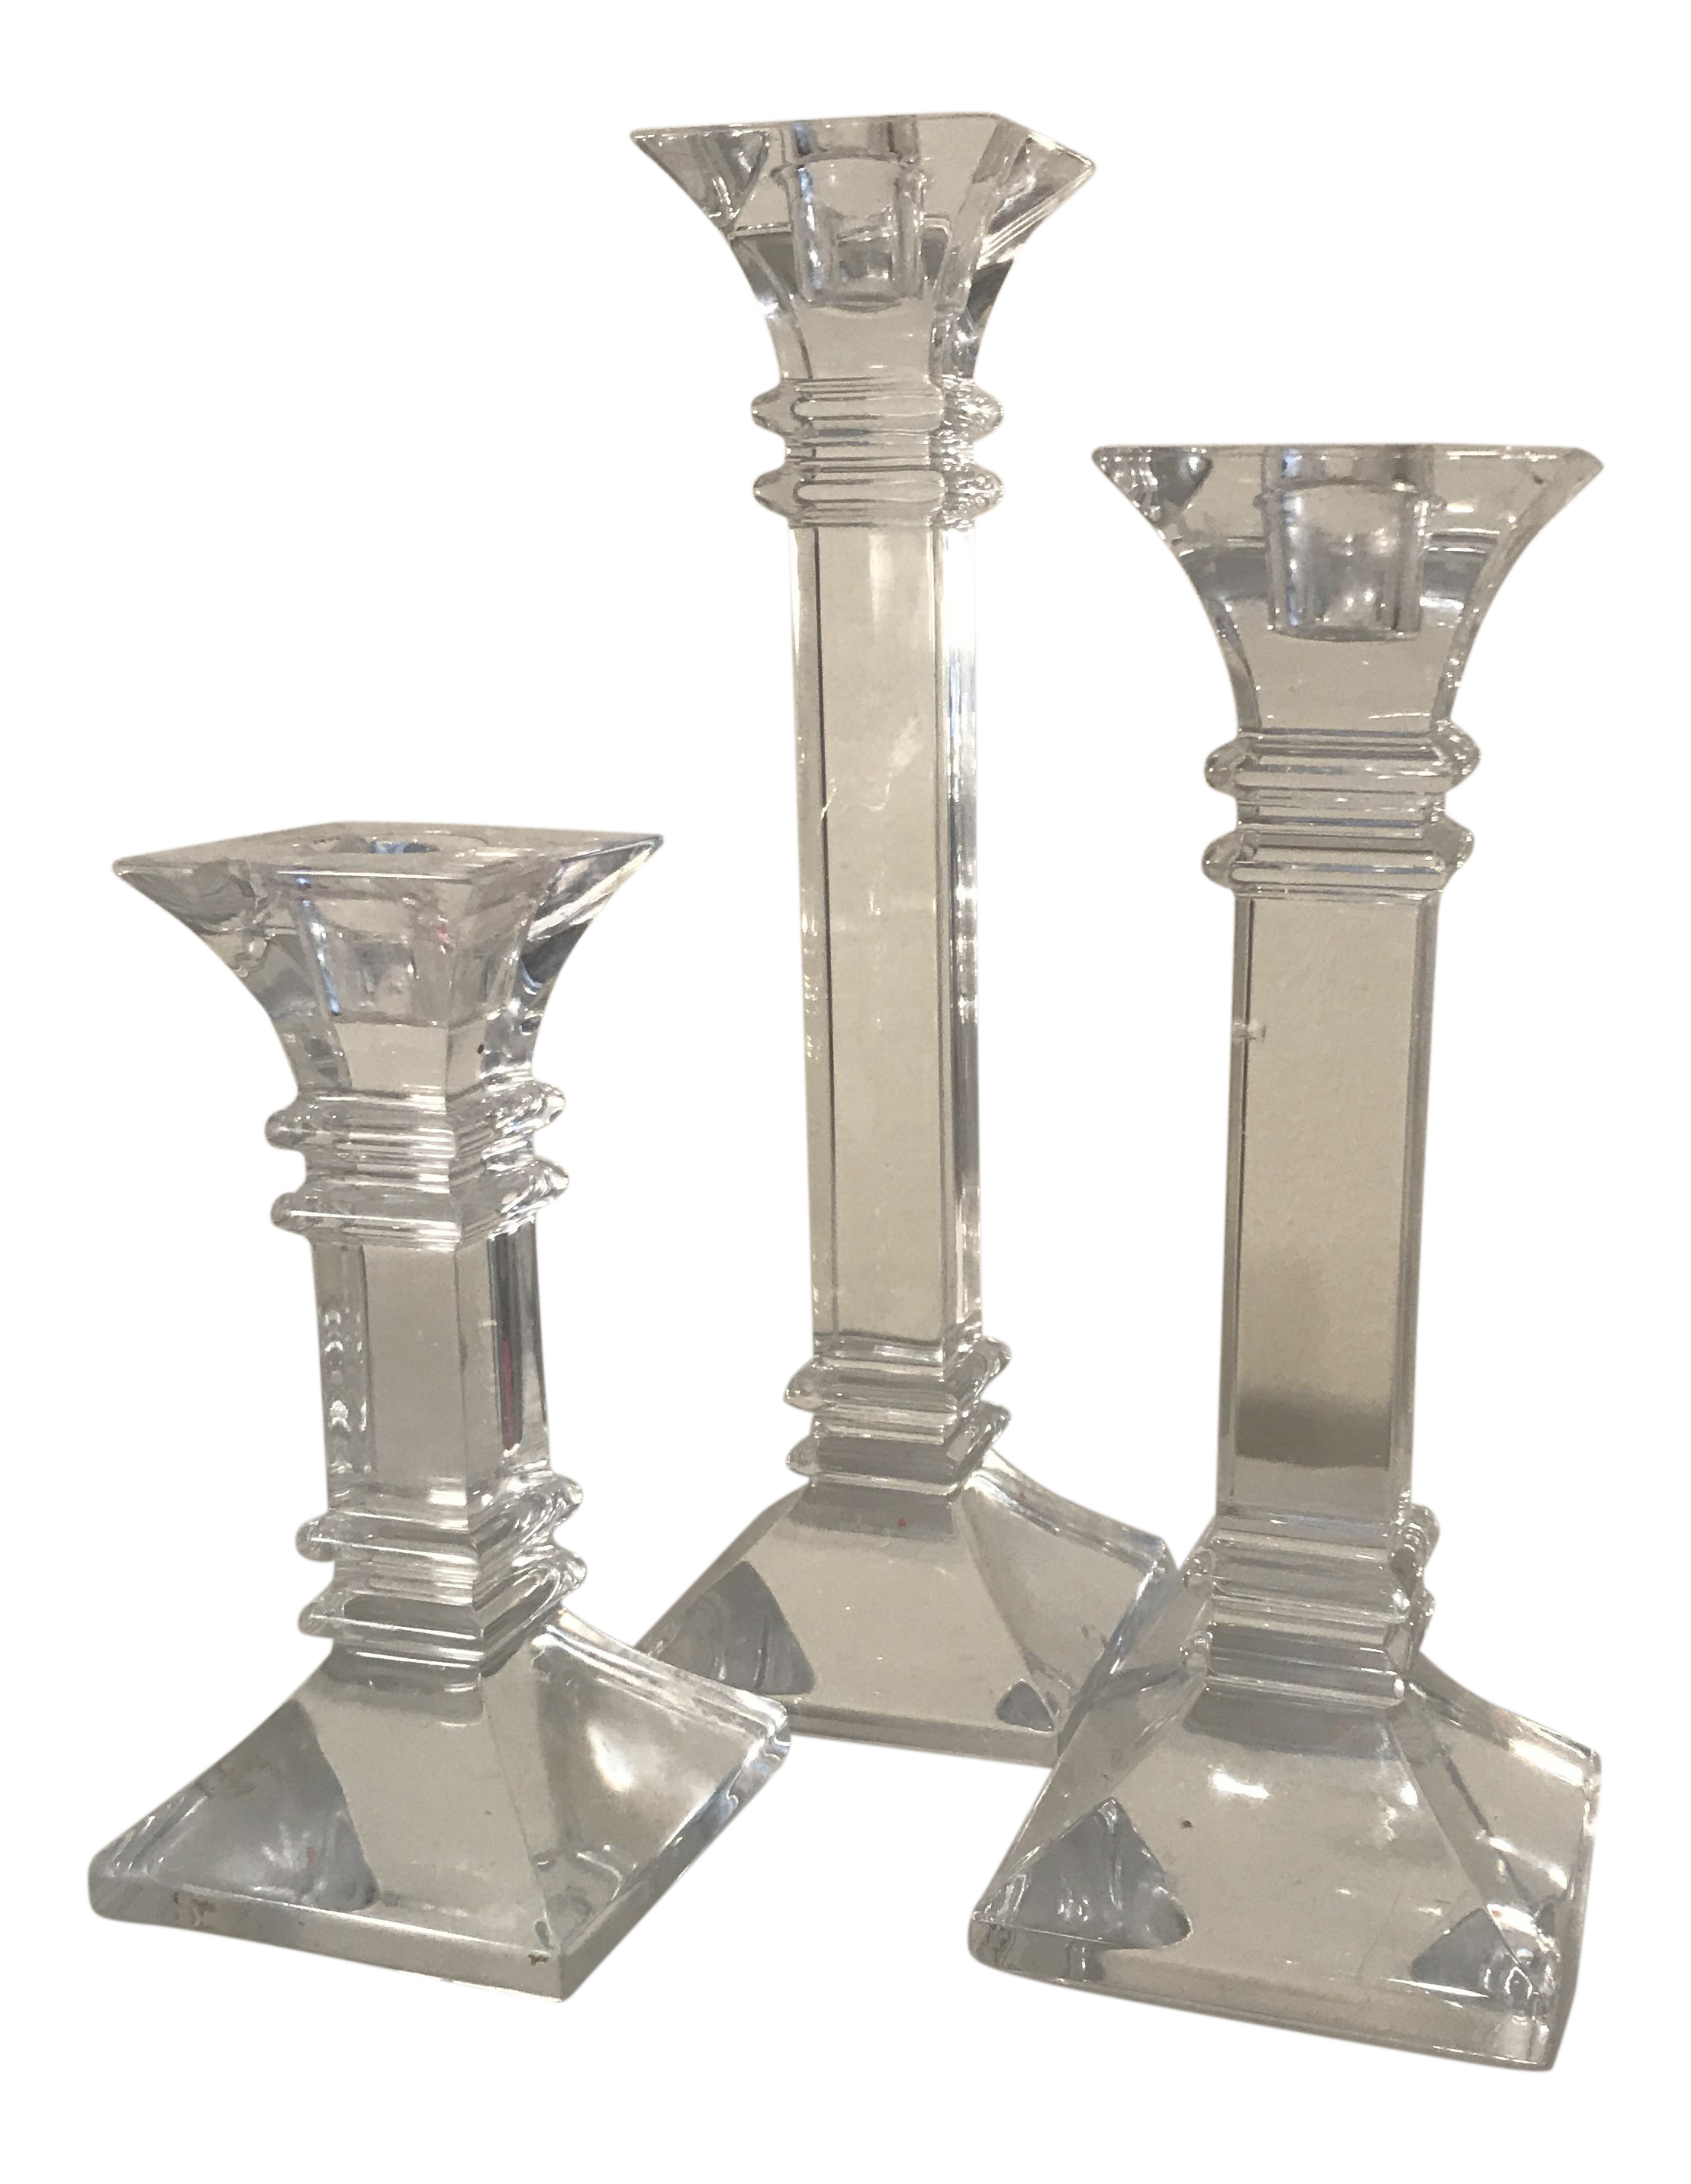 Vintage Waterford Crystal Candle Holders - Set of 3 | Chairish